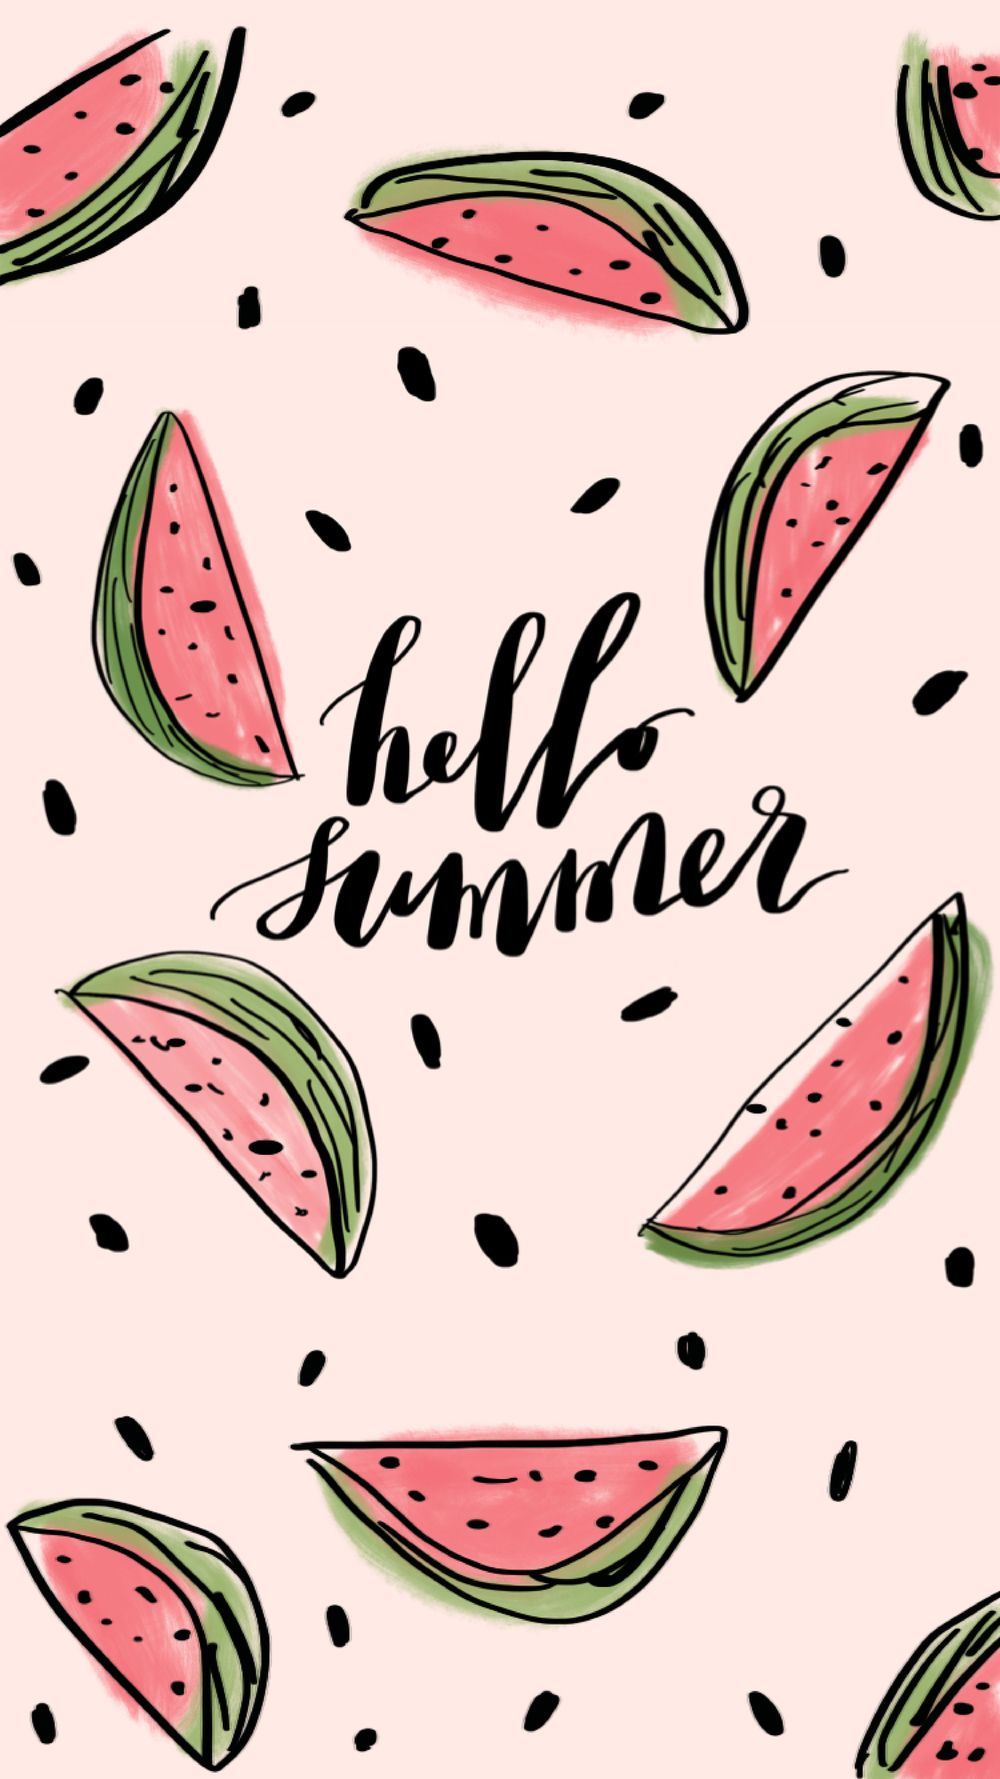 Hello Summer FREE Wallpaper Watermelon wallpaper, Cute